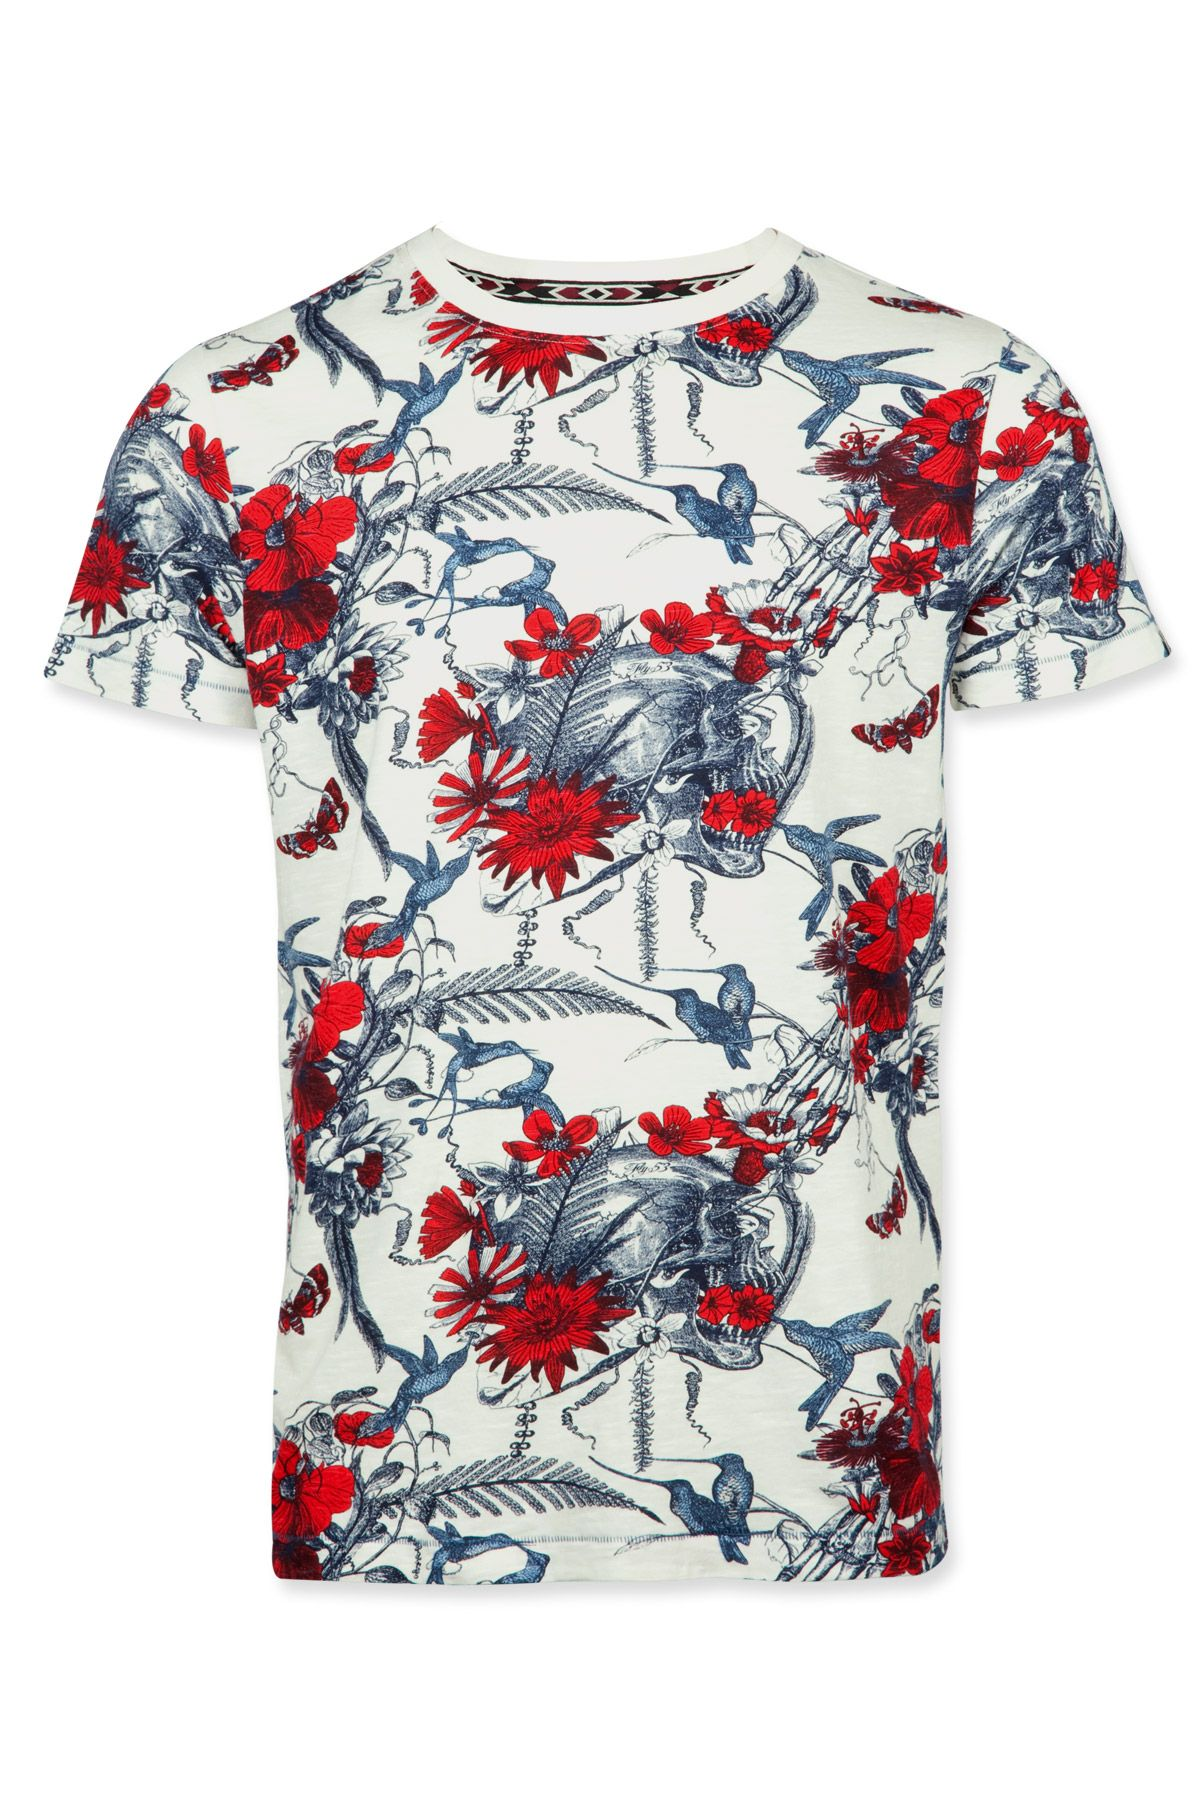 24e2667a27c FLY53 T Shirt featuring all over printed floral design. 100% Cotton ...